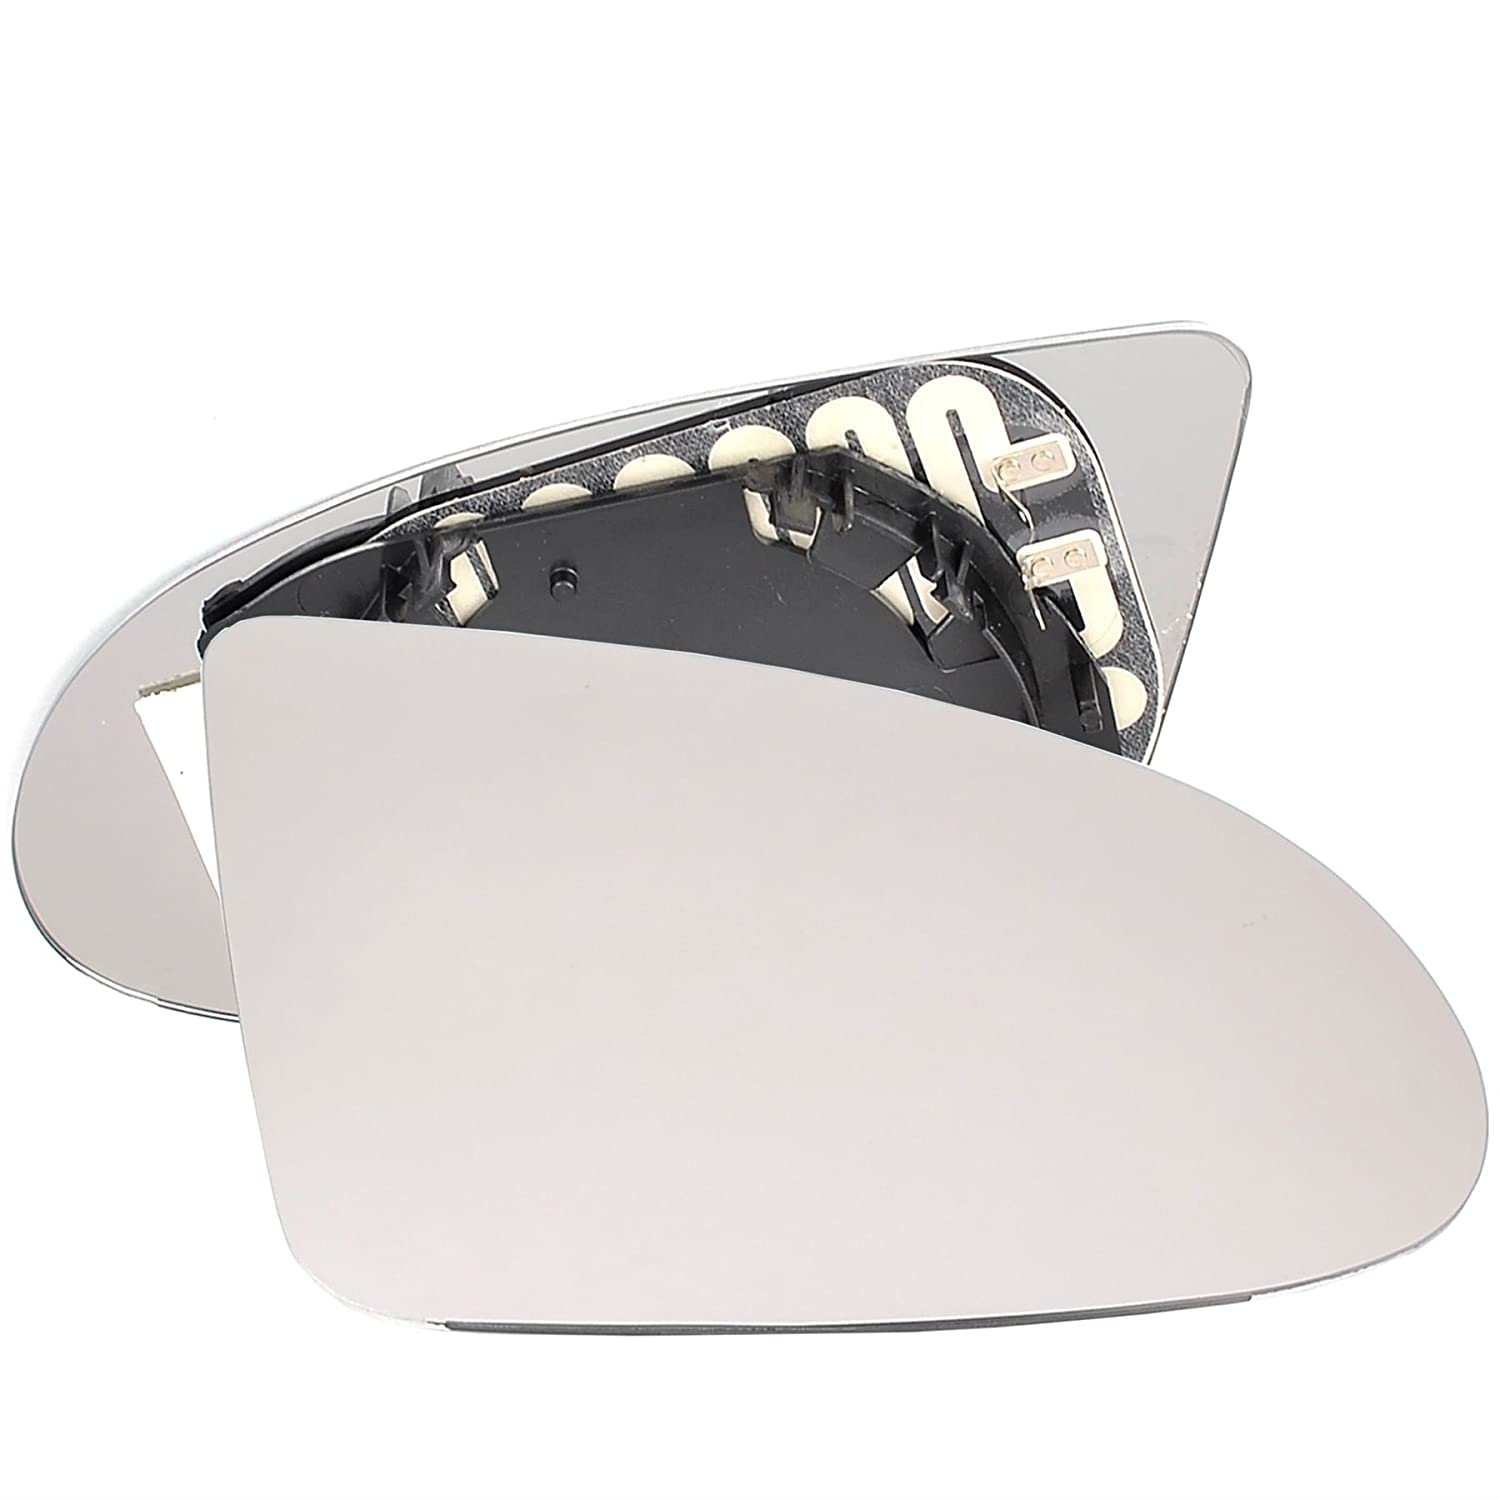 Driver right hand side Heated wing door Silver mirror glass with backing plate #C-SHY//R-AIA200 Clip On